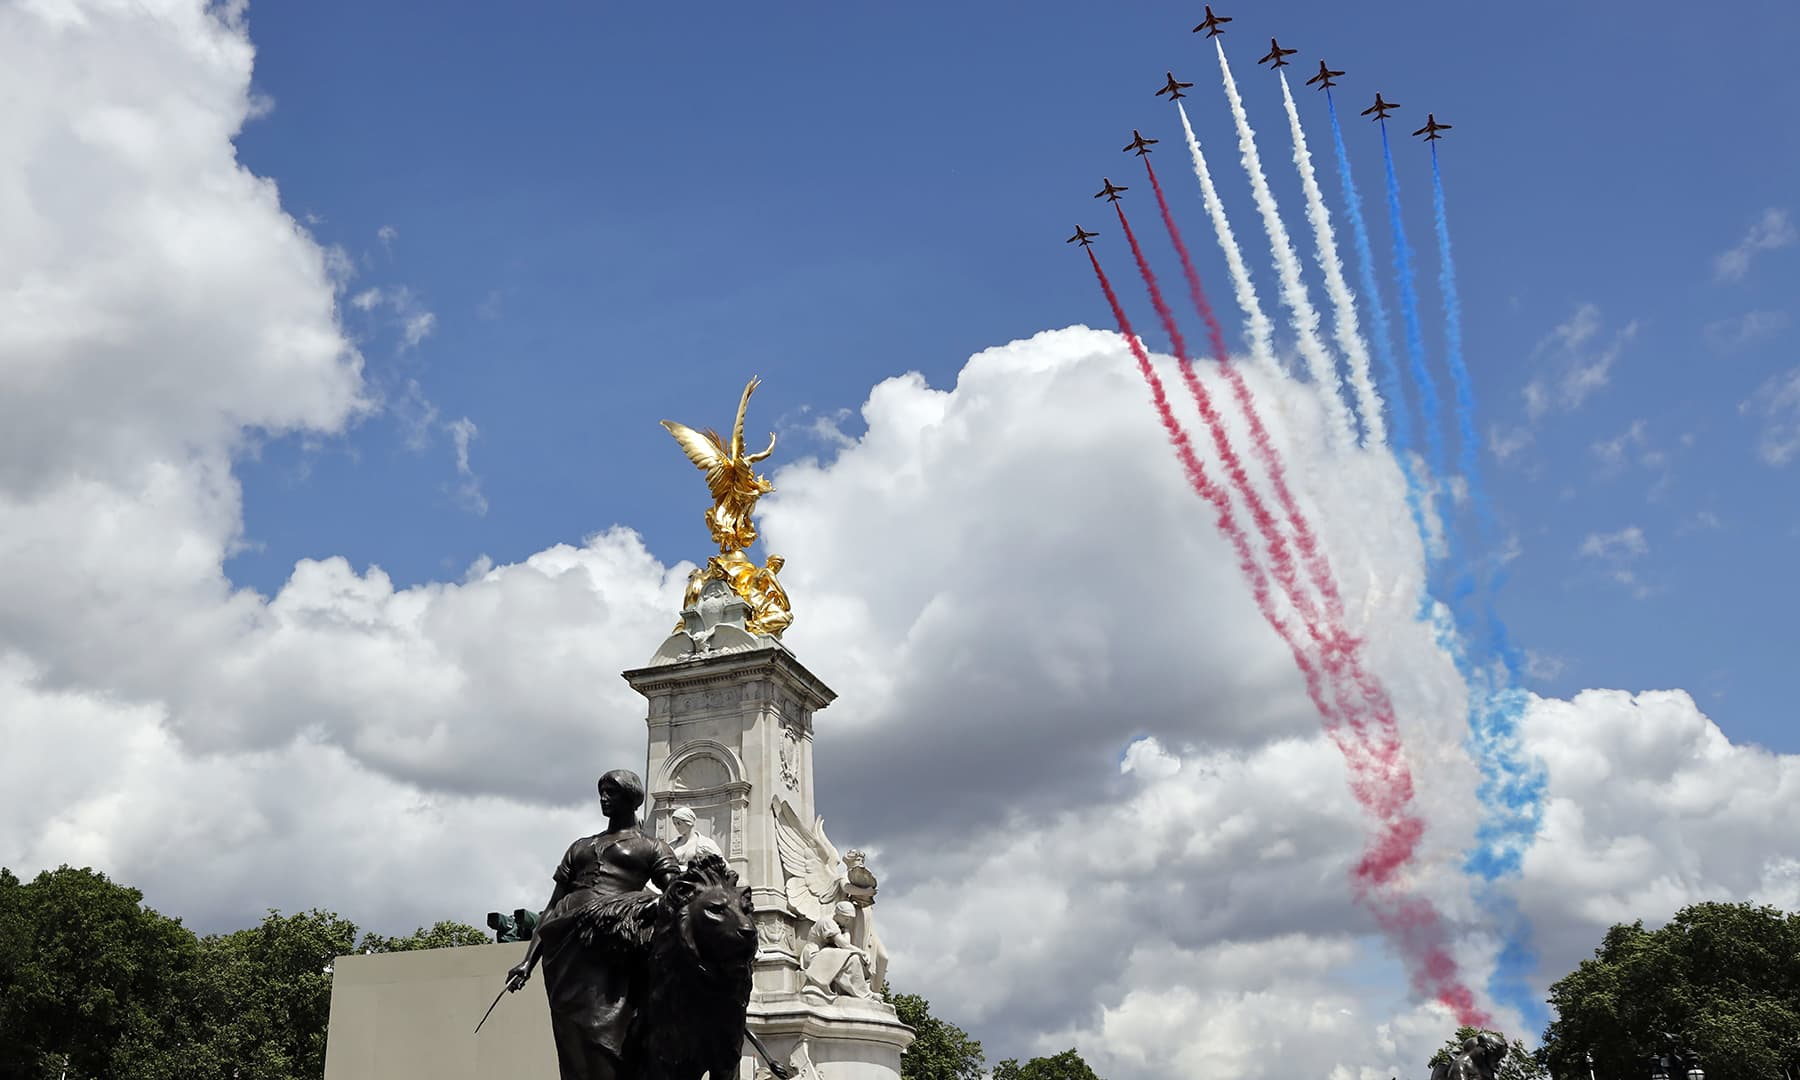 Britain's Red Arrows, the flying display team of the Royal Air Force (RAF) fly over The Queen Victoria Memorial outside Buckingham Palace, watched by members of the Royal Family on the balcony. — AFP